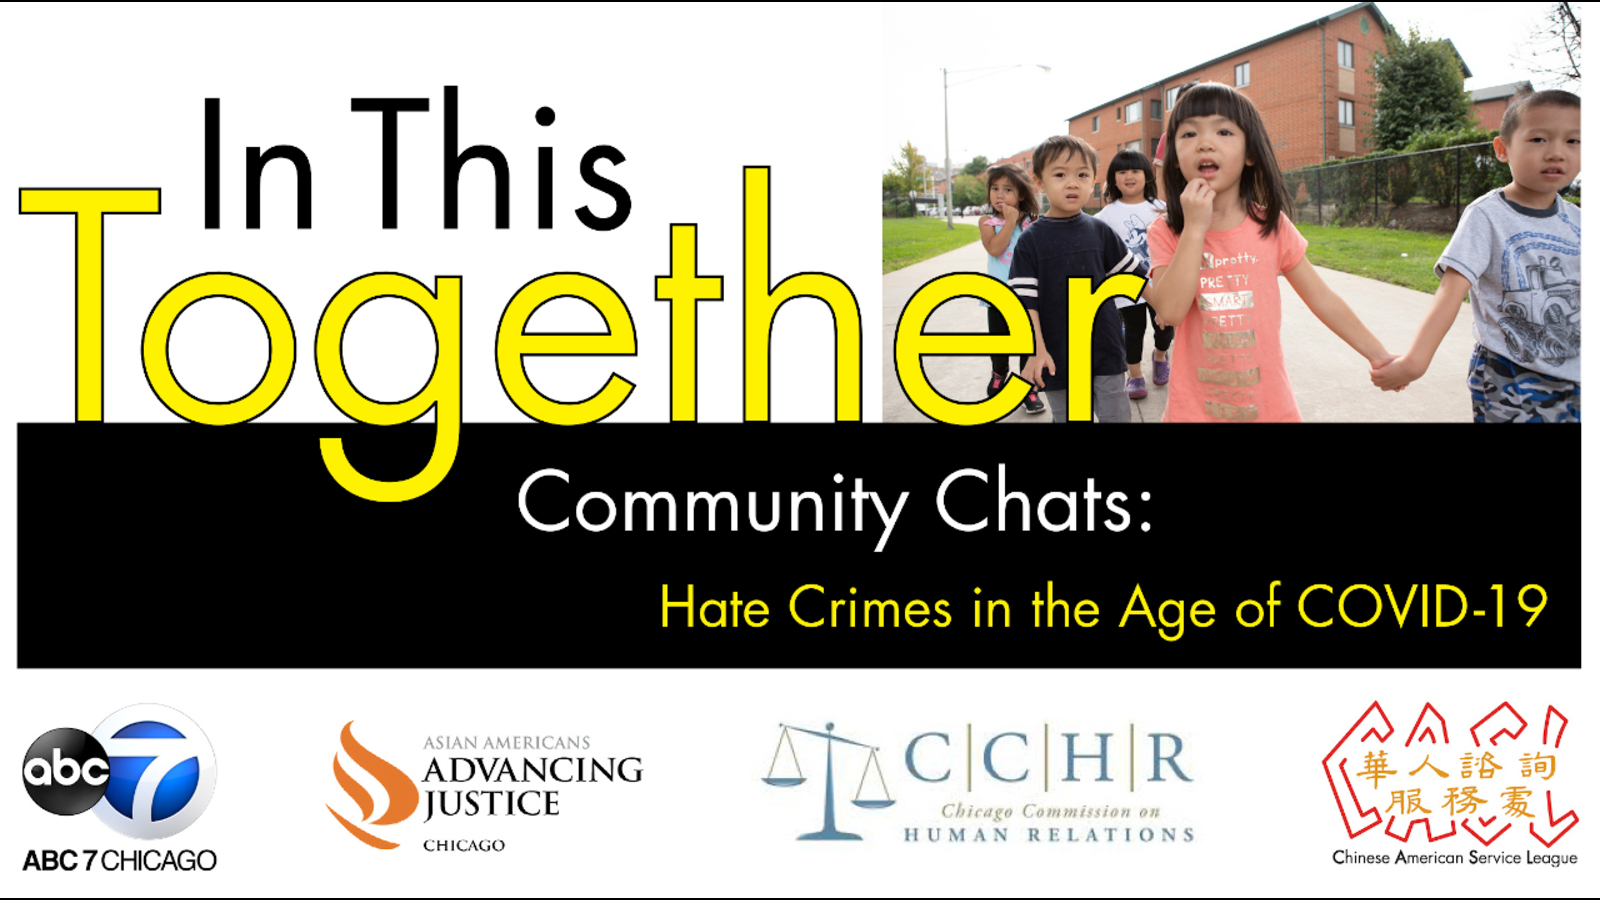 abc7chicago.com: Virtual Community Chat addressing Hate Crimes against the Asian Community in Chicago